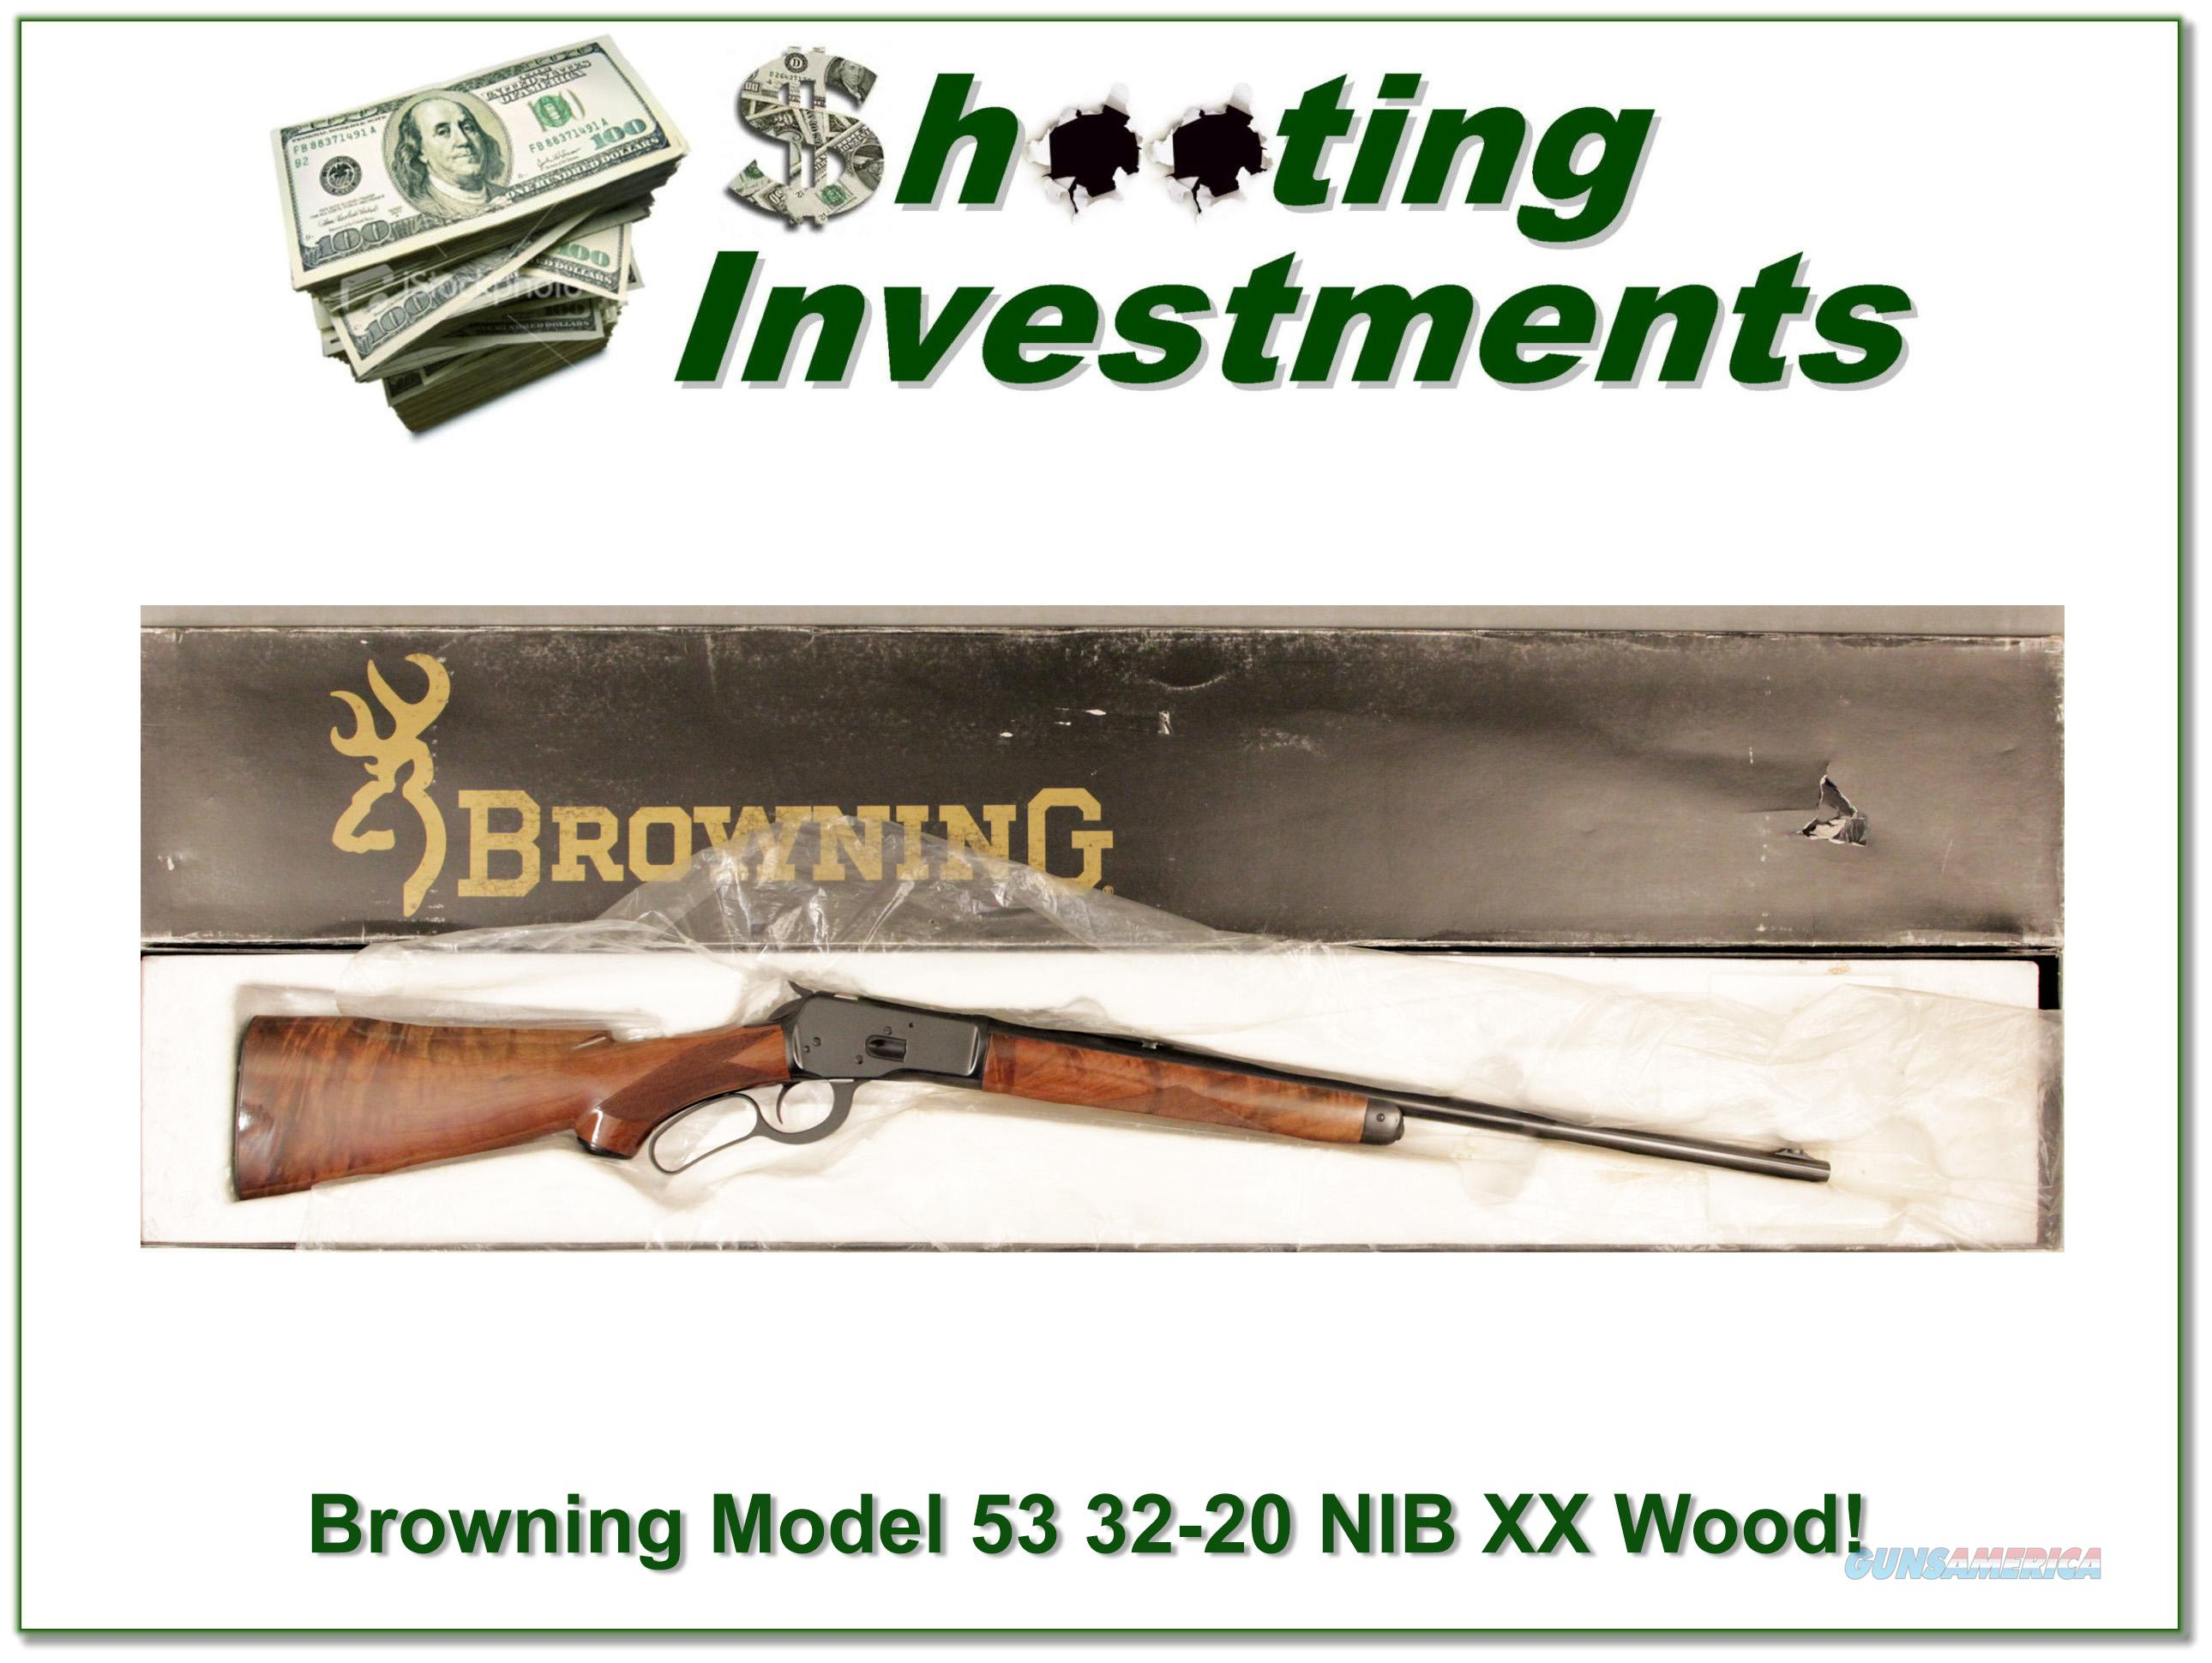 Browning Model 53 32-20 NIB with XX Wood!  Guns > Rifles > Browning Rifles > Lever Action